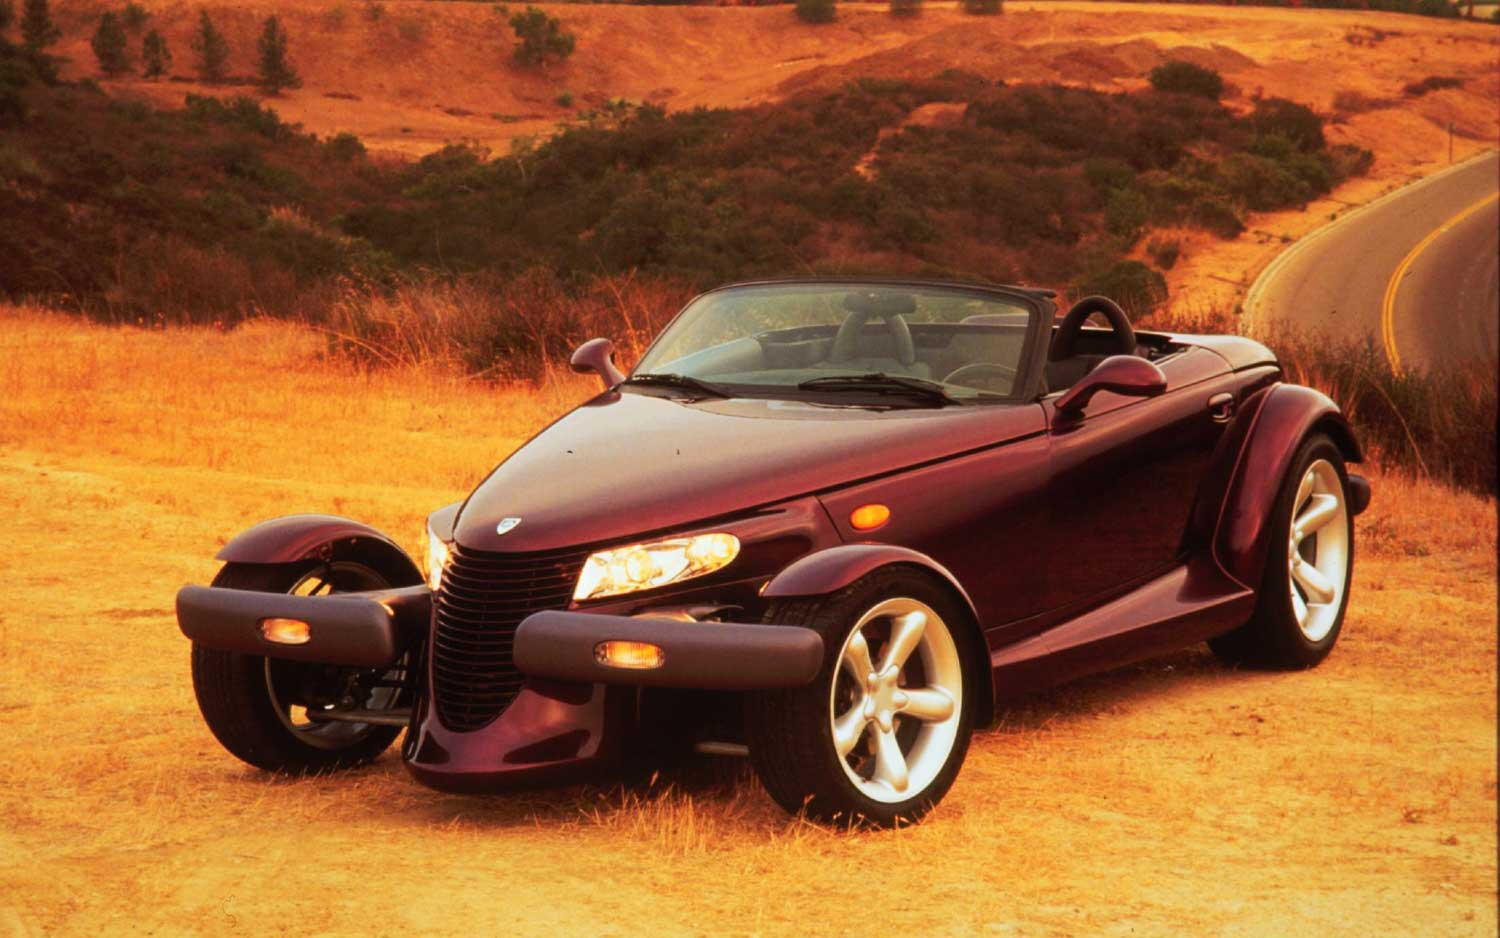 Muscle Car Photos Wallpaper Car Style Critic Production Hot Rod Plymouth Prowler